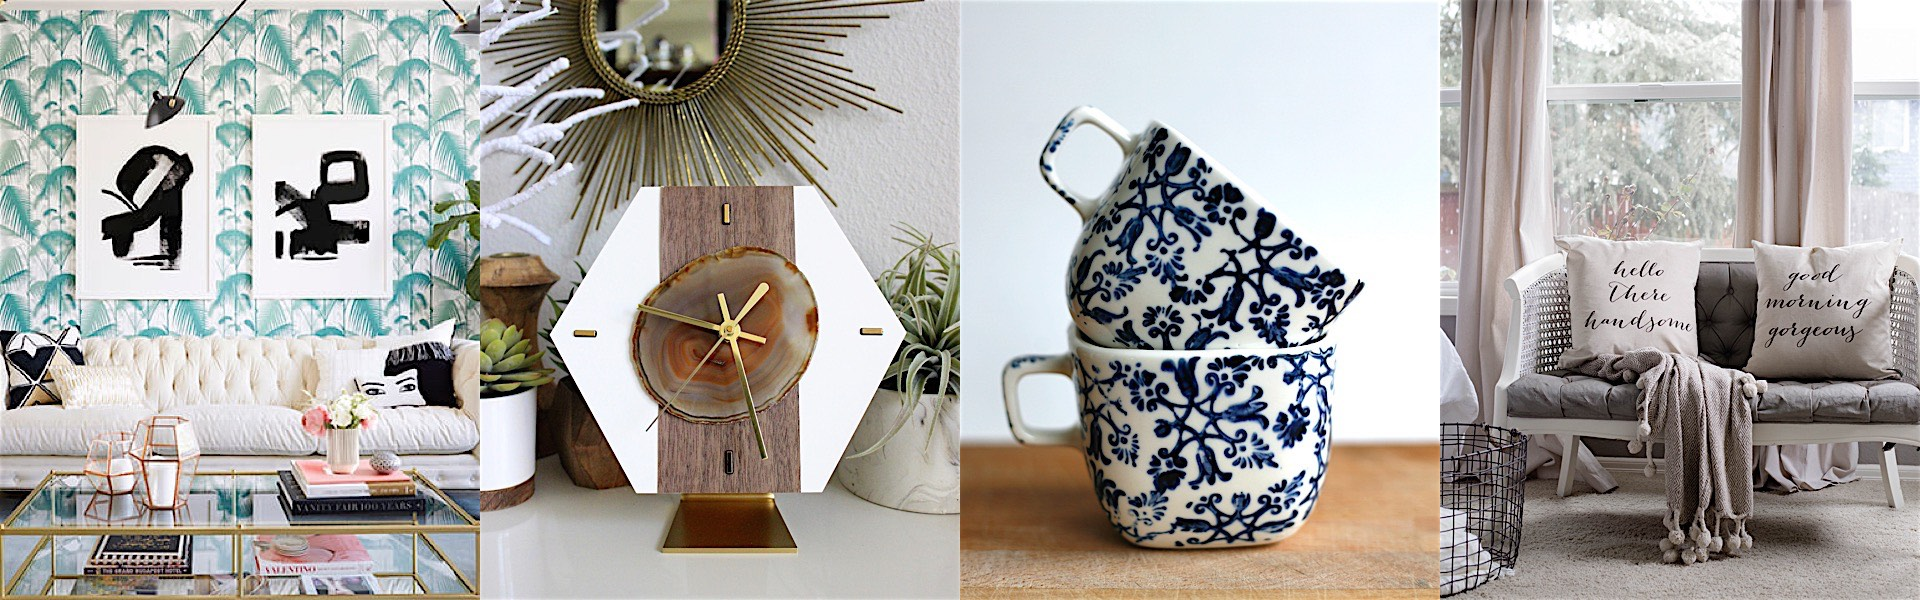 home decor items you need on your registry